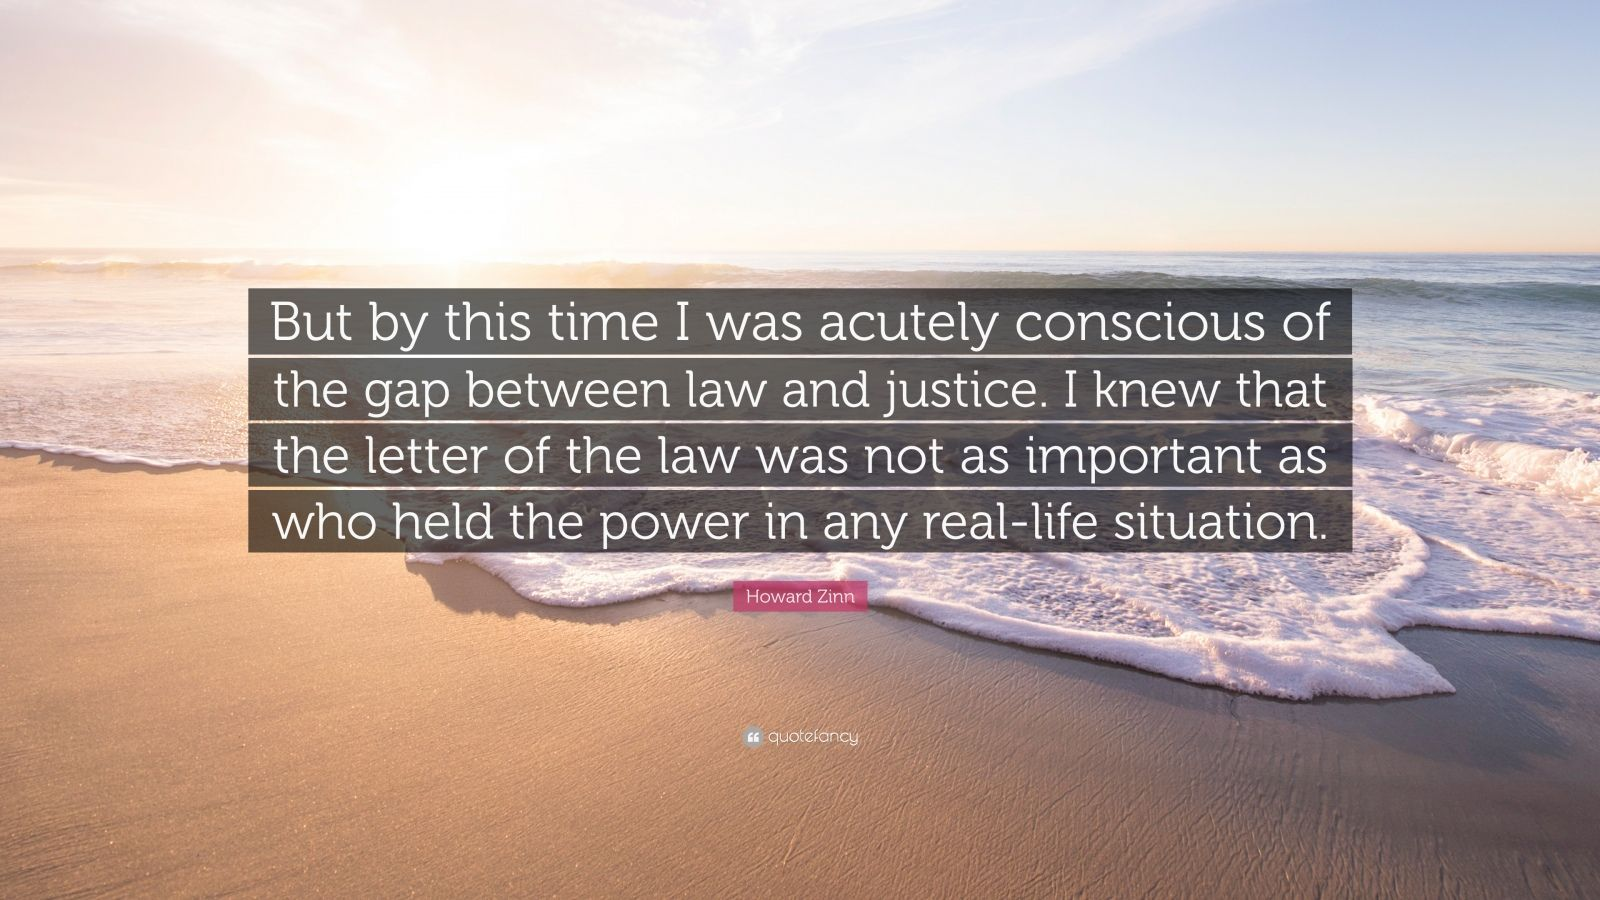 "Howard Zinn Quote: ""But by this time I was acutely conscious of the gap between law and justice. I knew that the letter of the law was not as important as who held the power in any real-life situation."""